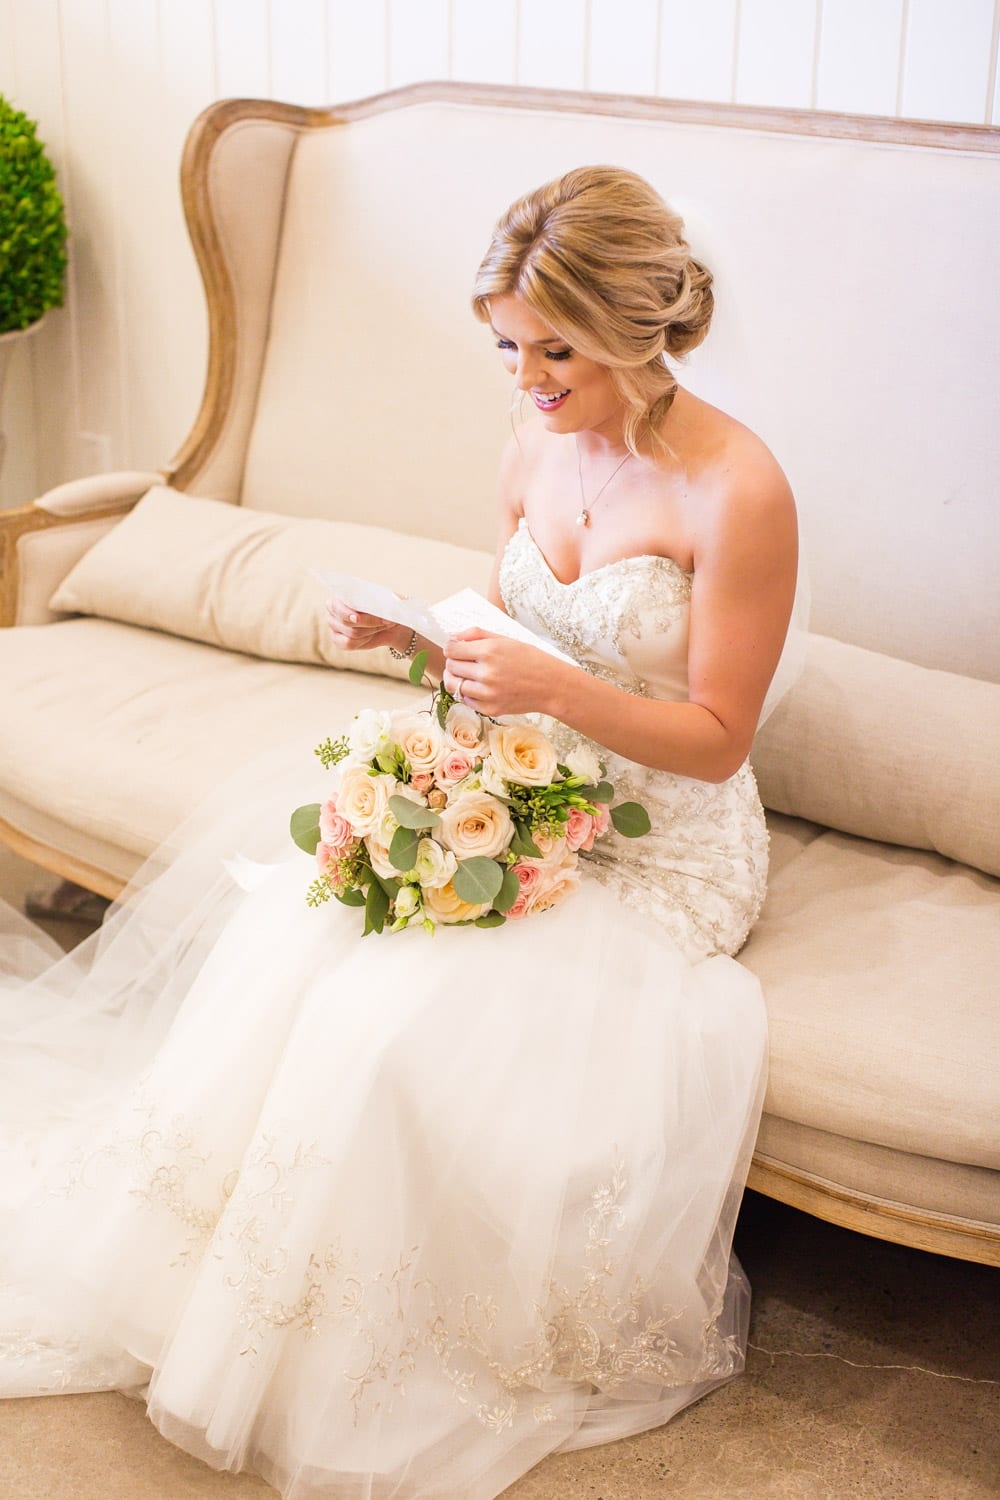 Bride reads letter on love seat